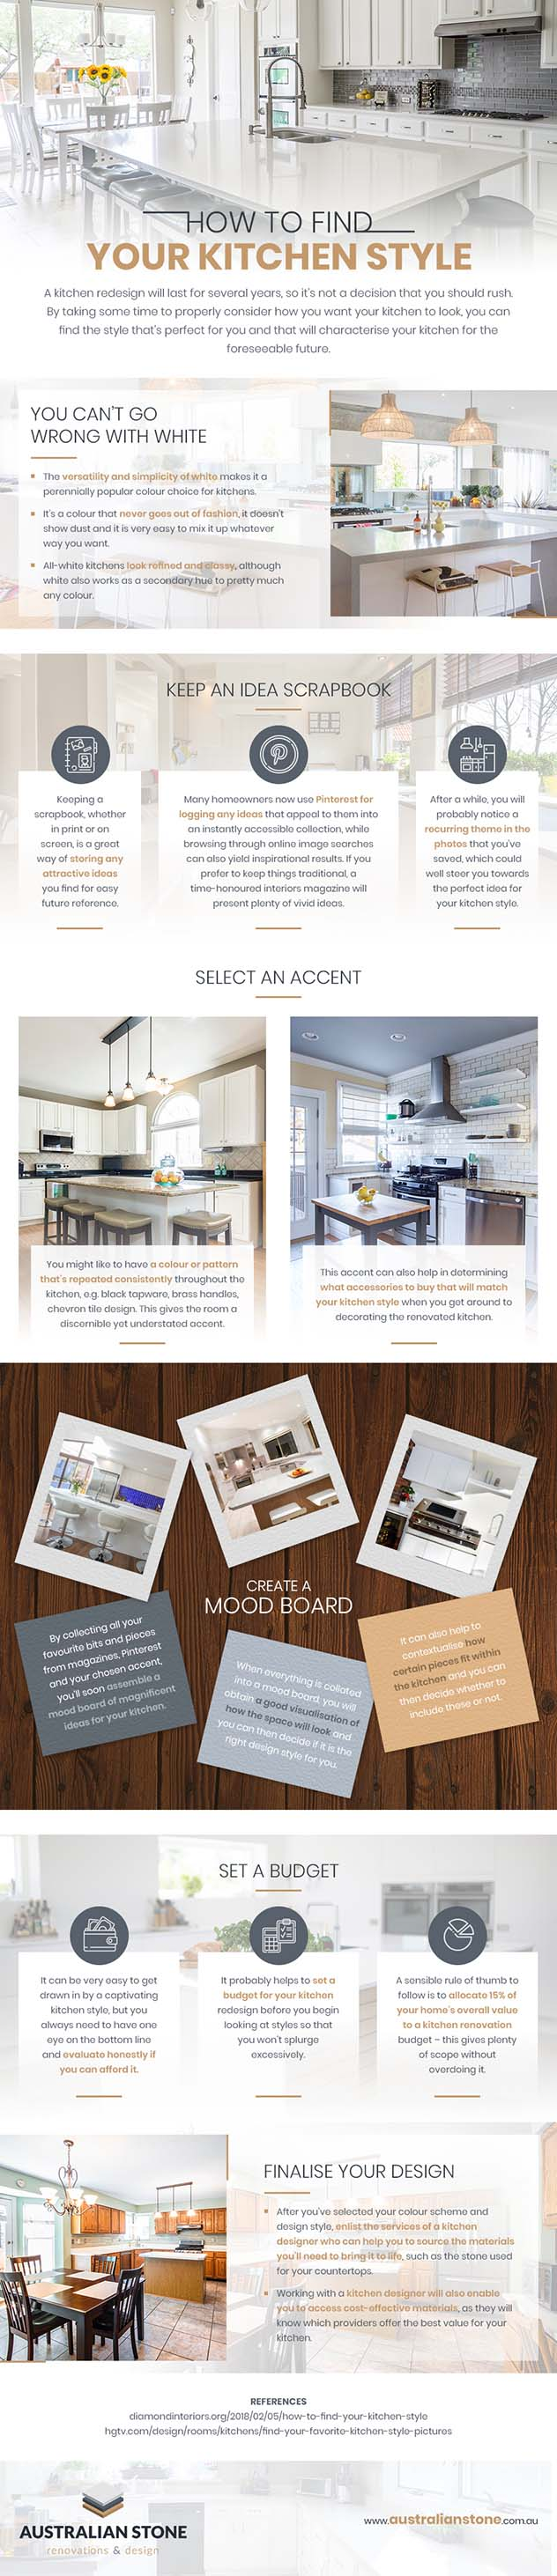 How to Find Your Kitchen Style infographic